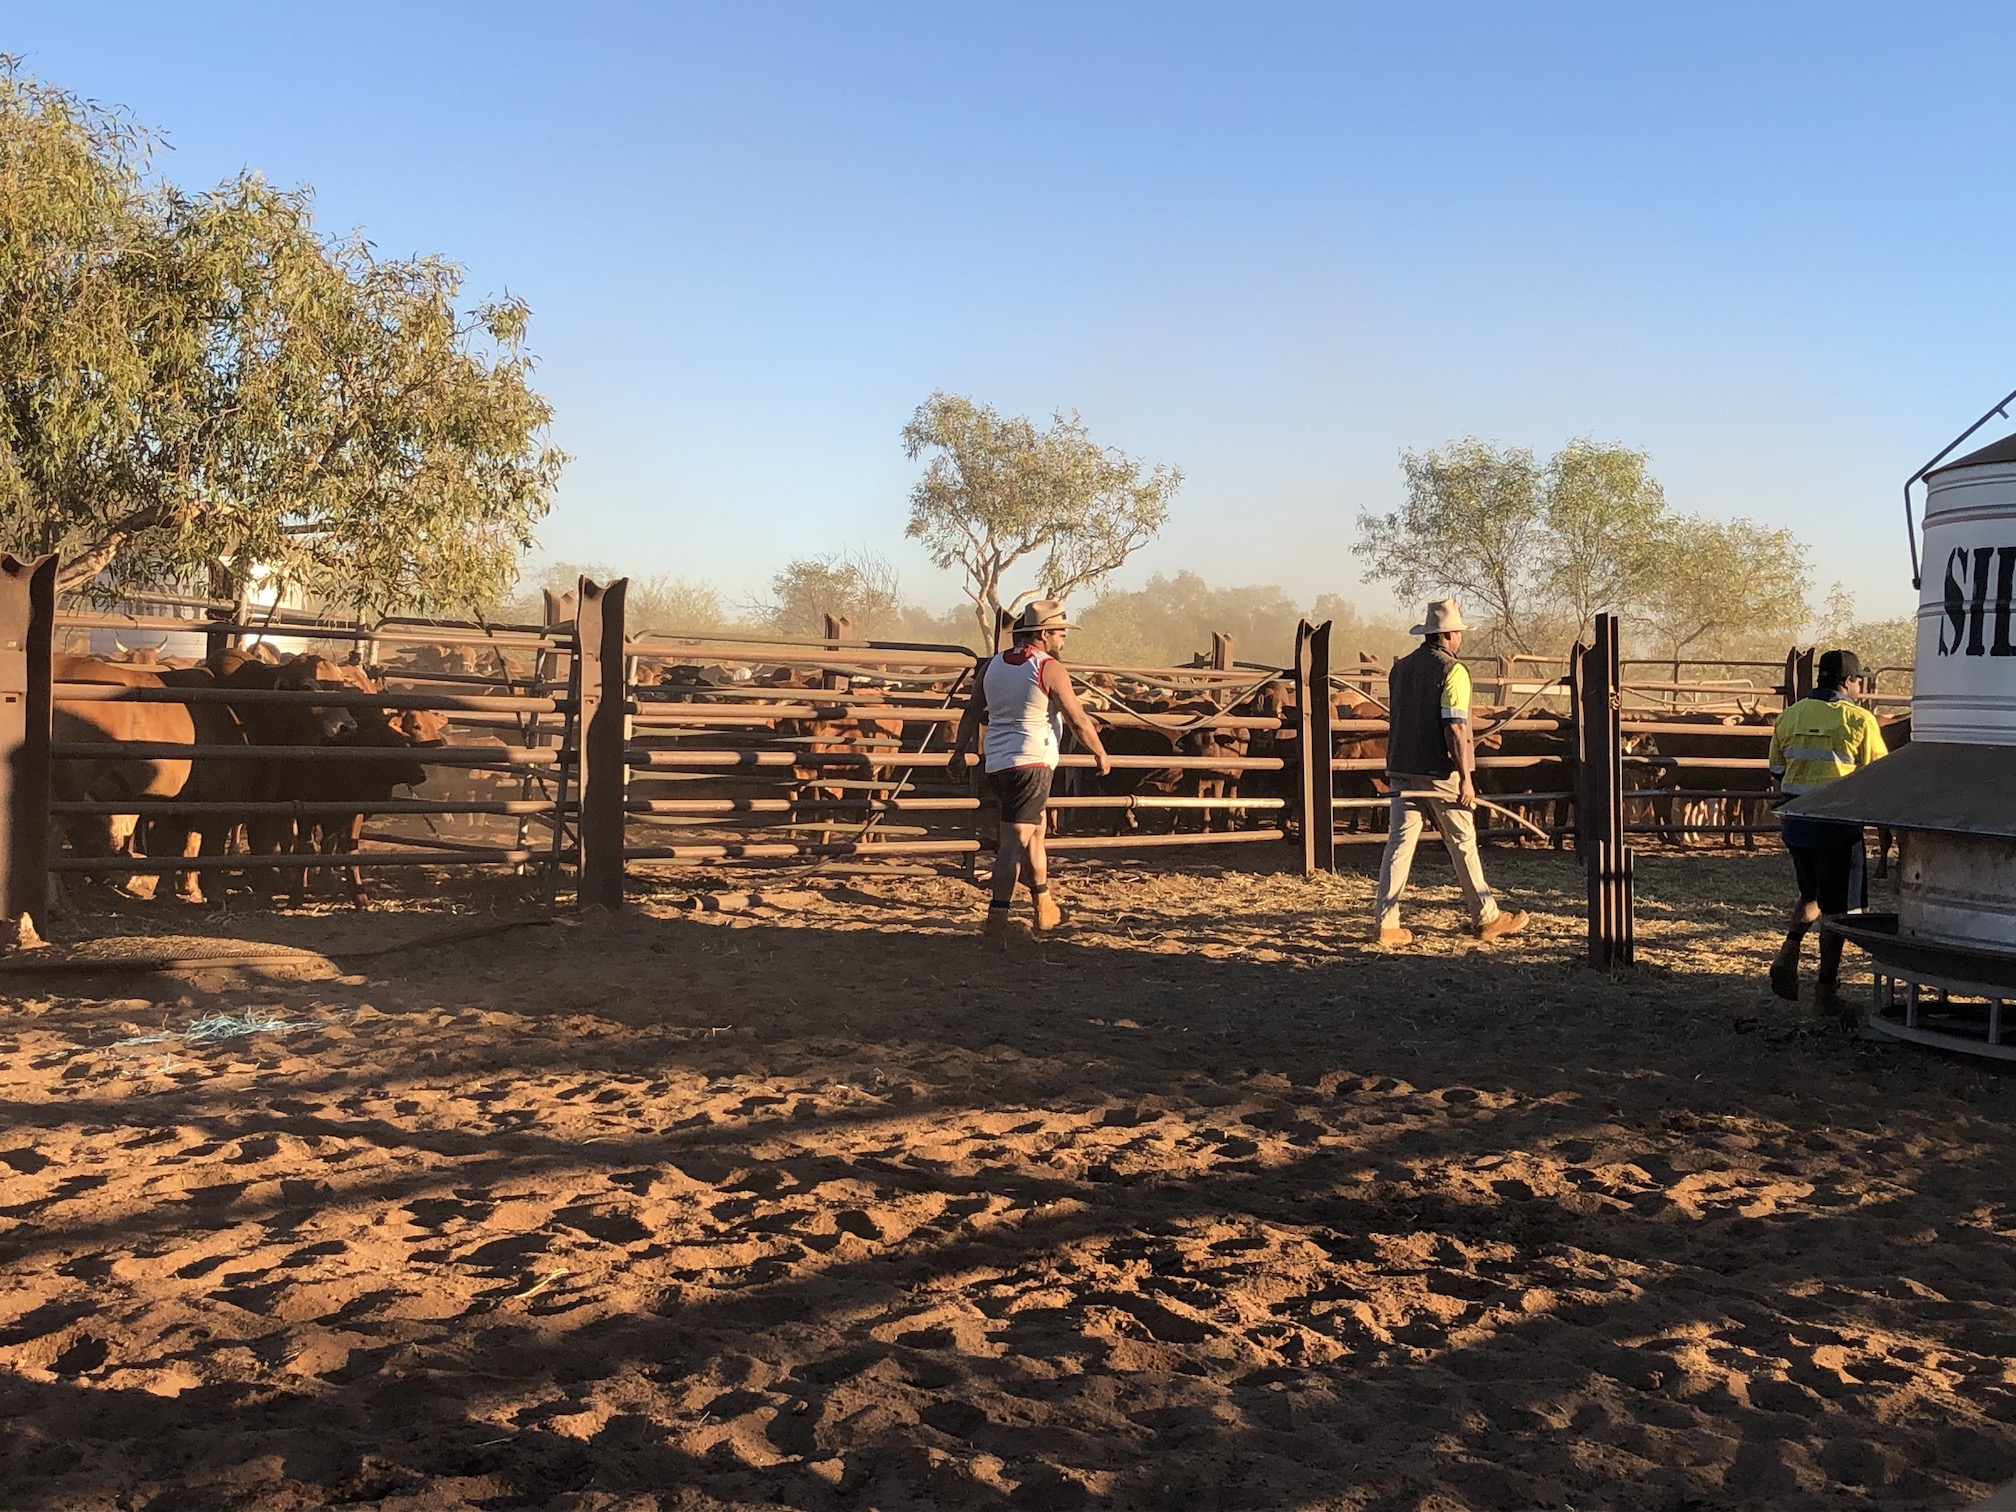 2020-07-31  7.21am Going to sort mustered cattle